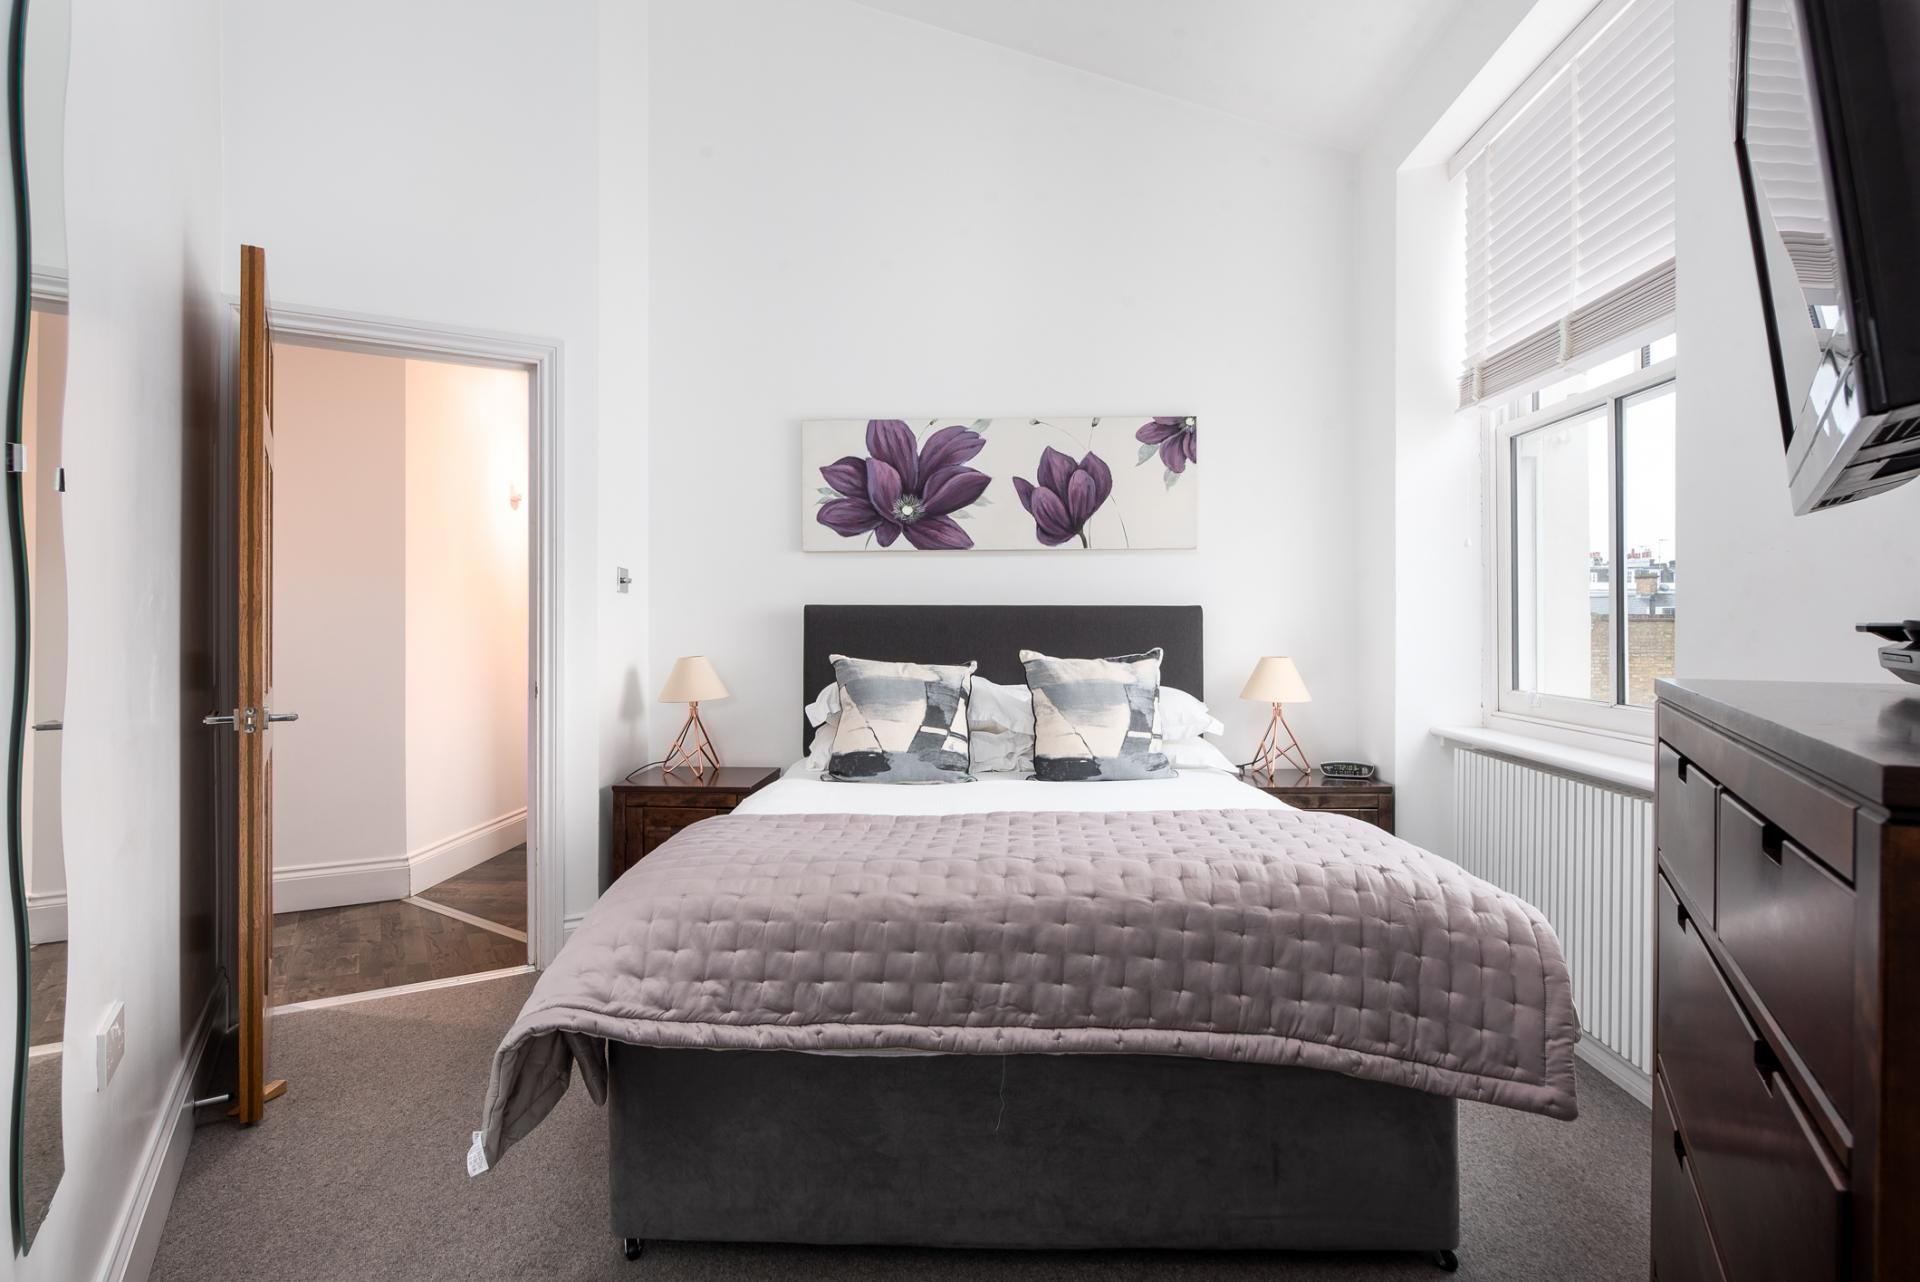 Bedroom at Chelsea Green Apartments, Chelsea, London - Citybase Apartments